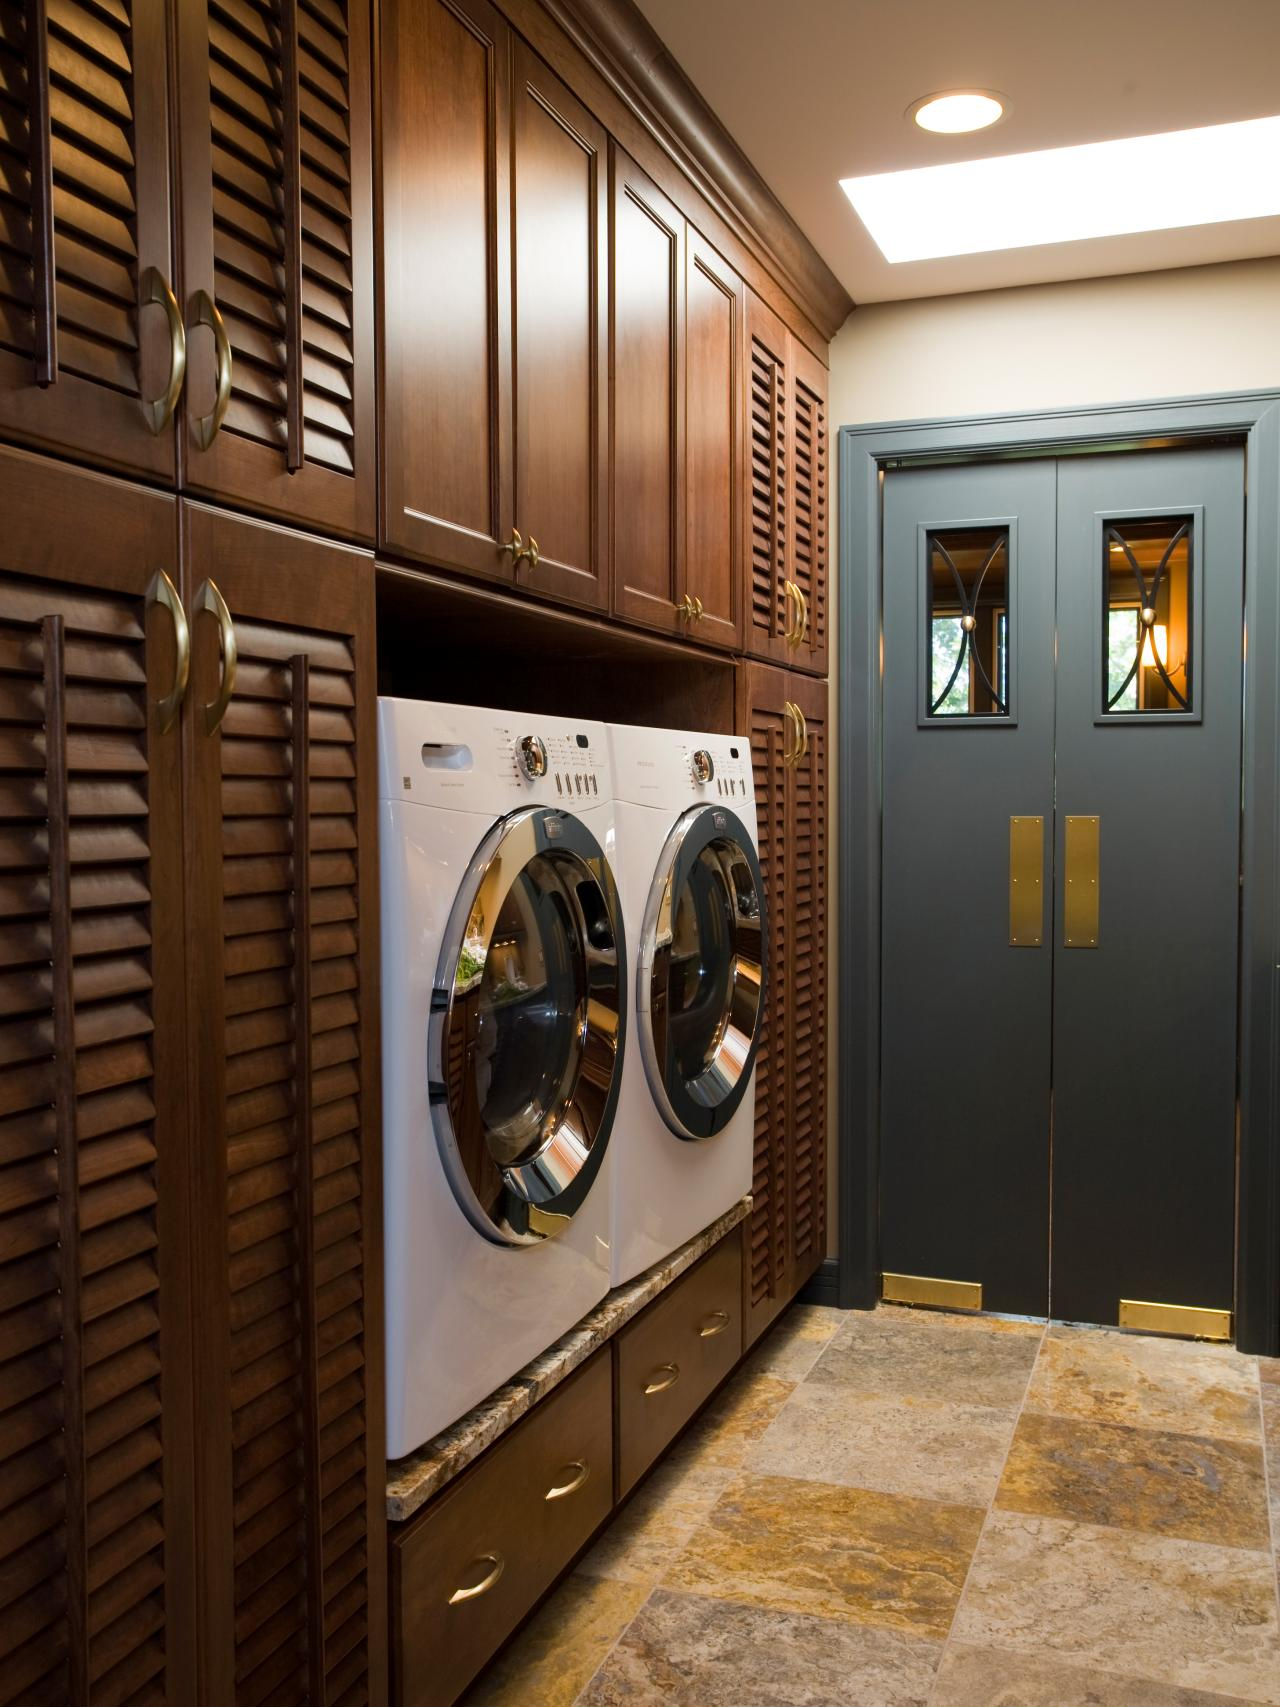 Tags Laundry Rooms Contemporary Style